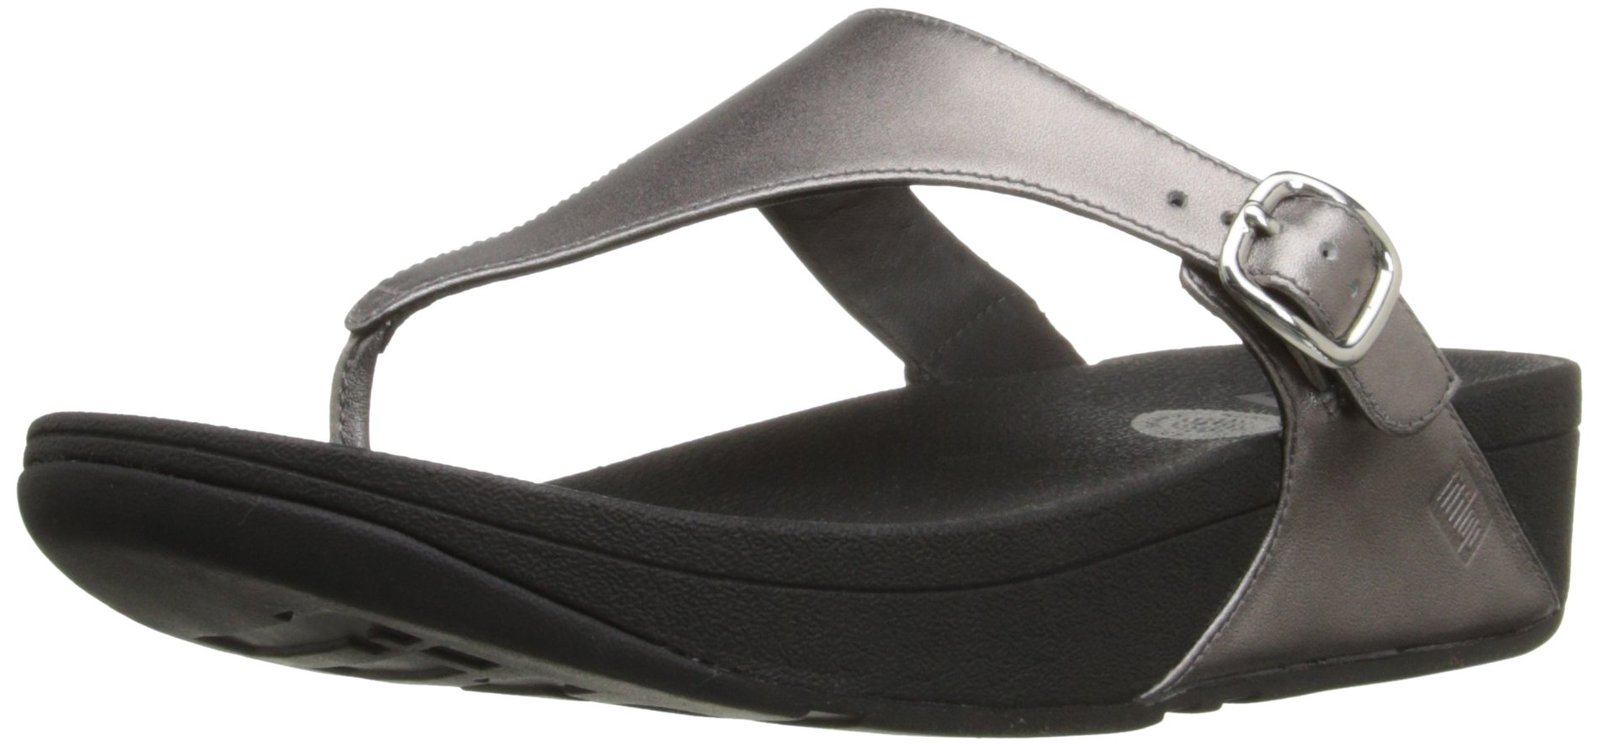 Fitflop Women's The Skinny Flip Flop, Pewter, 8 M US